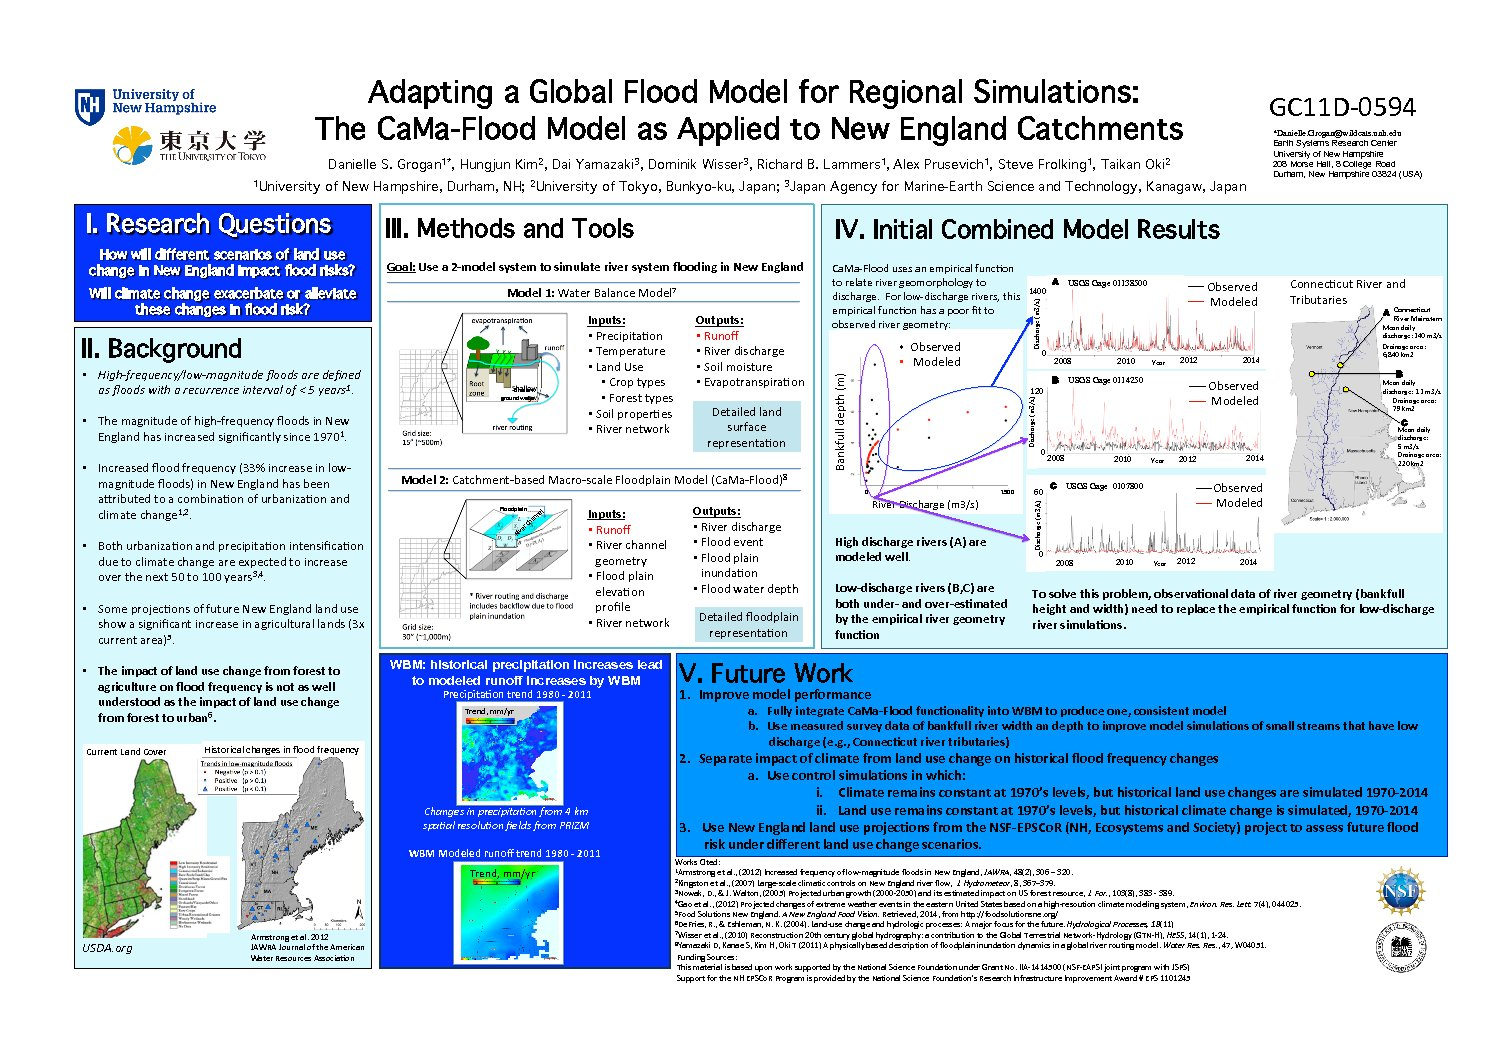 Adapting A Global Flood Model For Regional Simulations by dgrogan